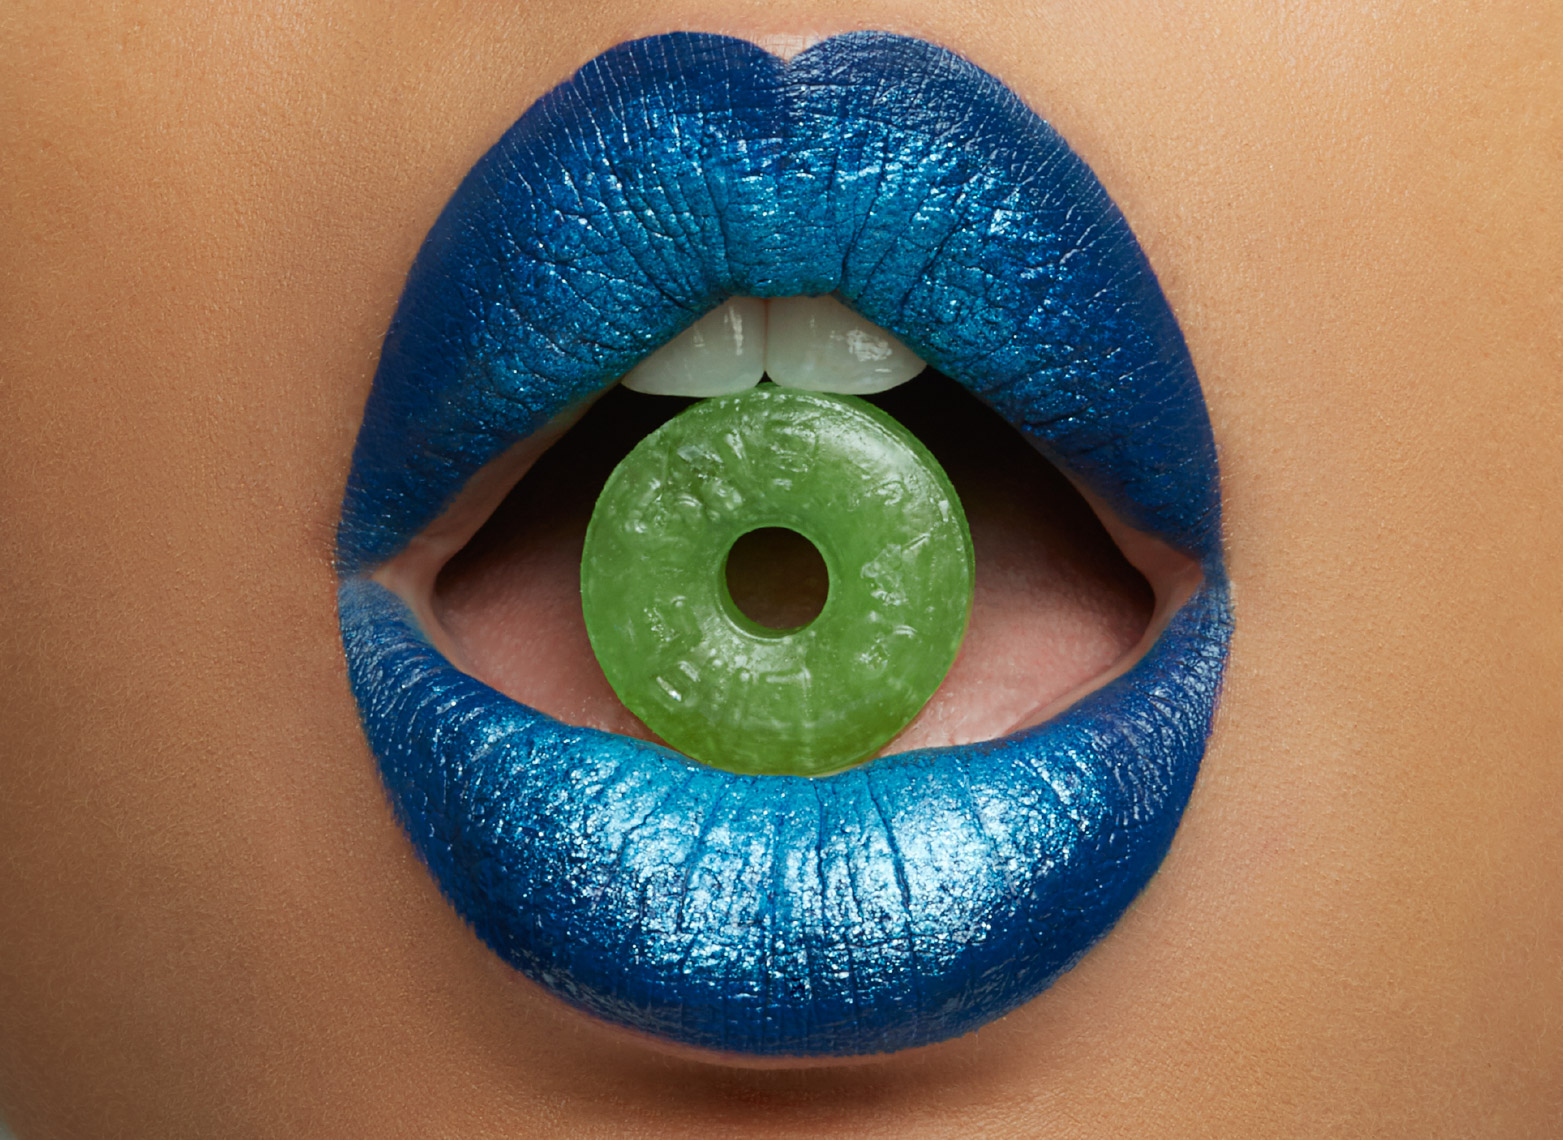 woman with blue shiny lipstick holding green candy between her teeth San Francisco product photographer